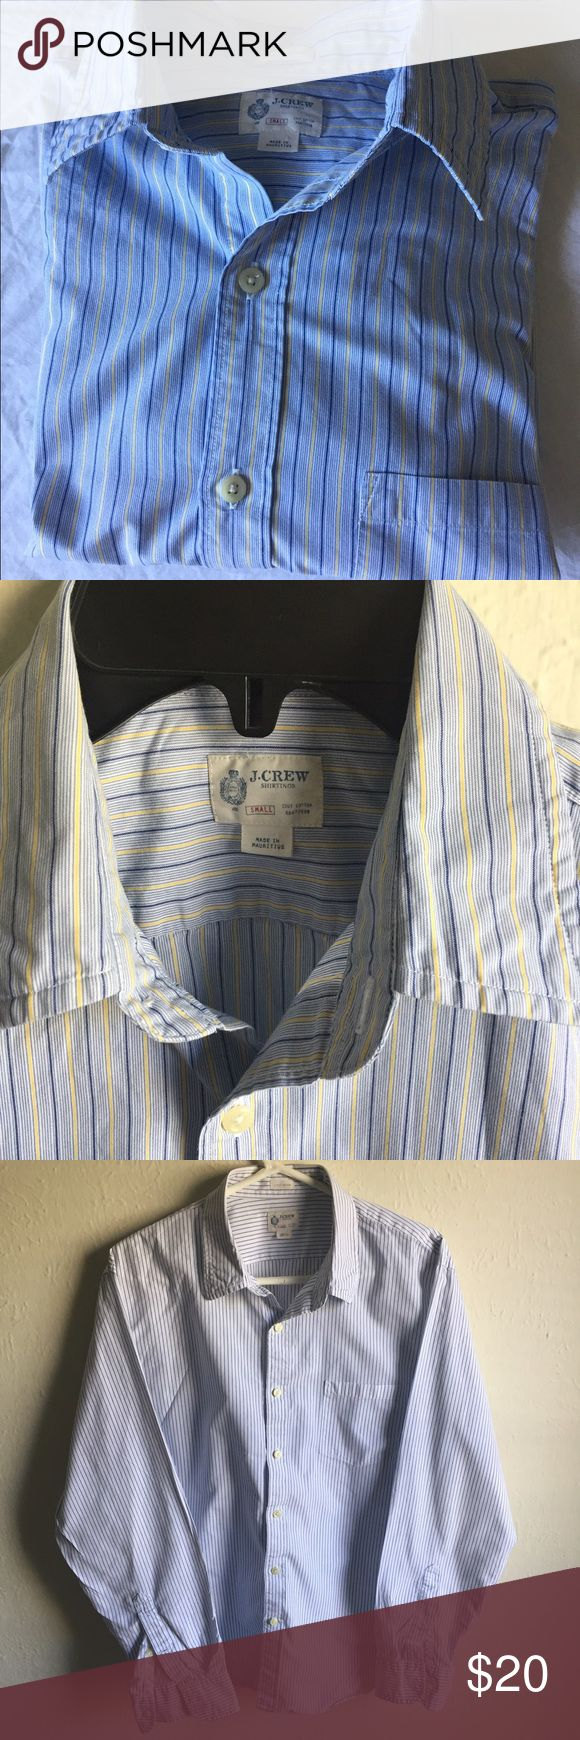 Trendy J.Crew shirt Size small shirt. Gently used with no defects. Great for casual wear J. Crew Shirts Casual Button Down Shirts